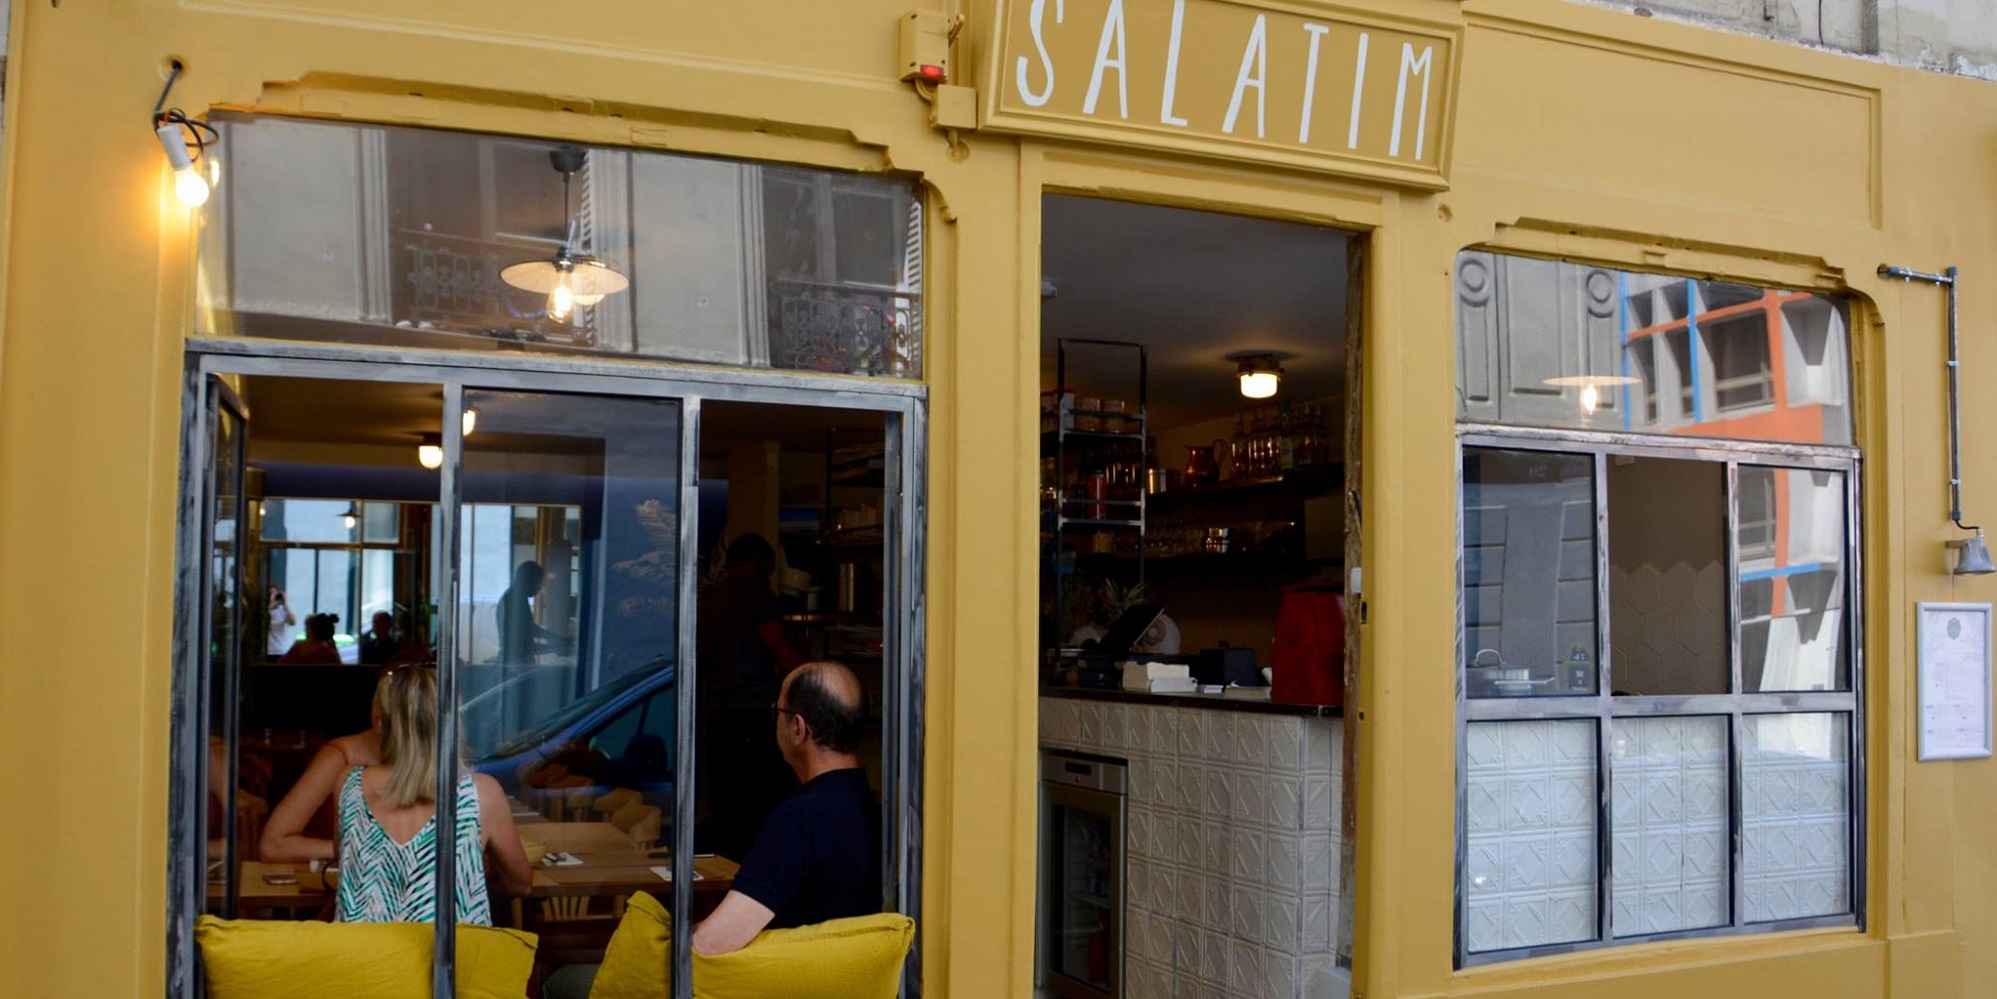 Brunch Salatim (75002 Paris)